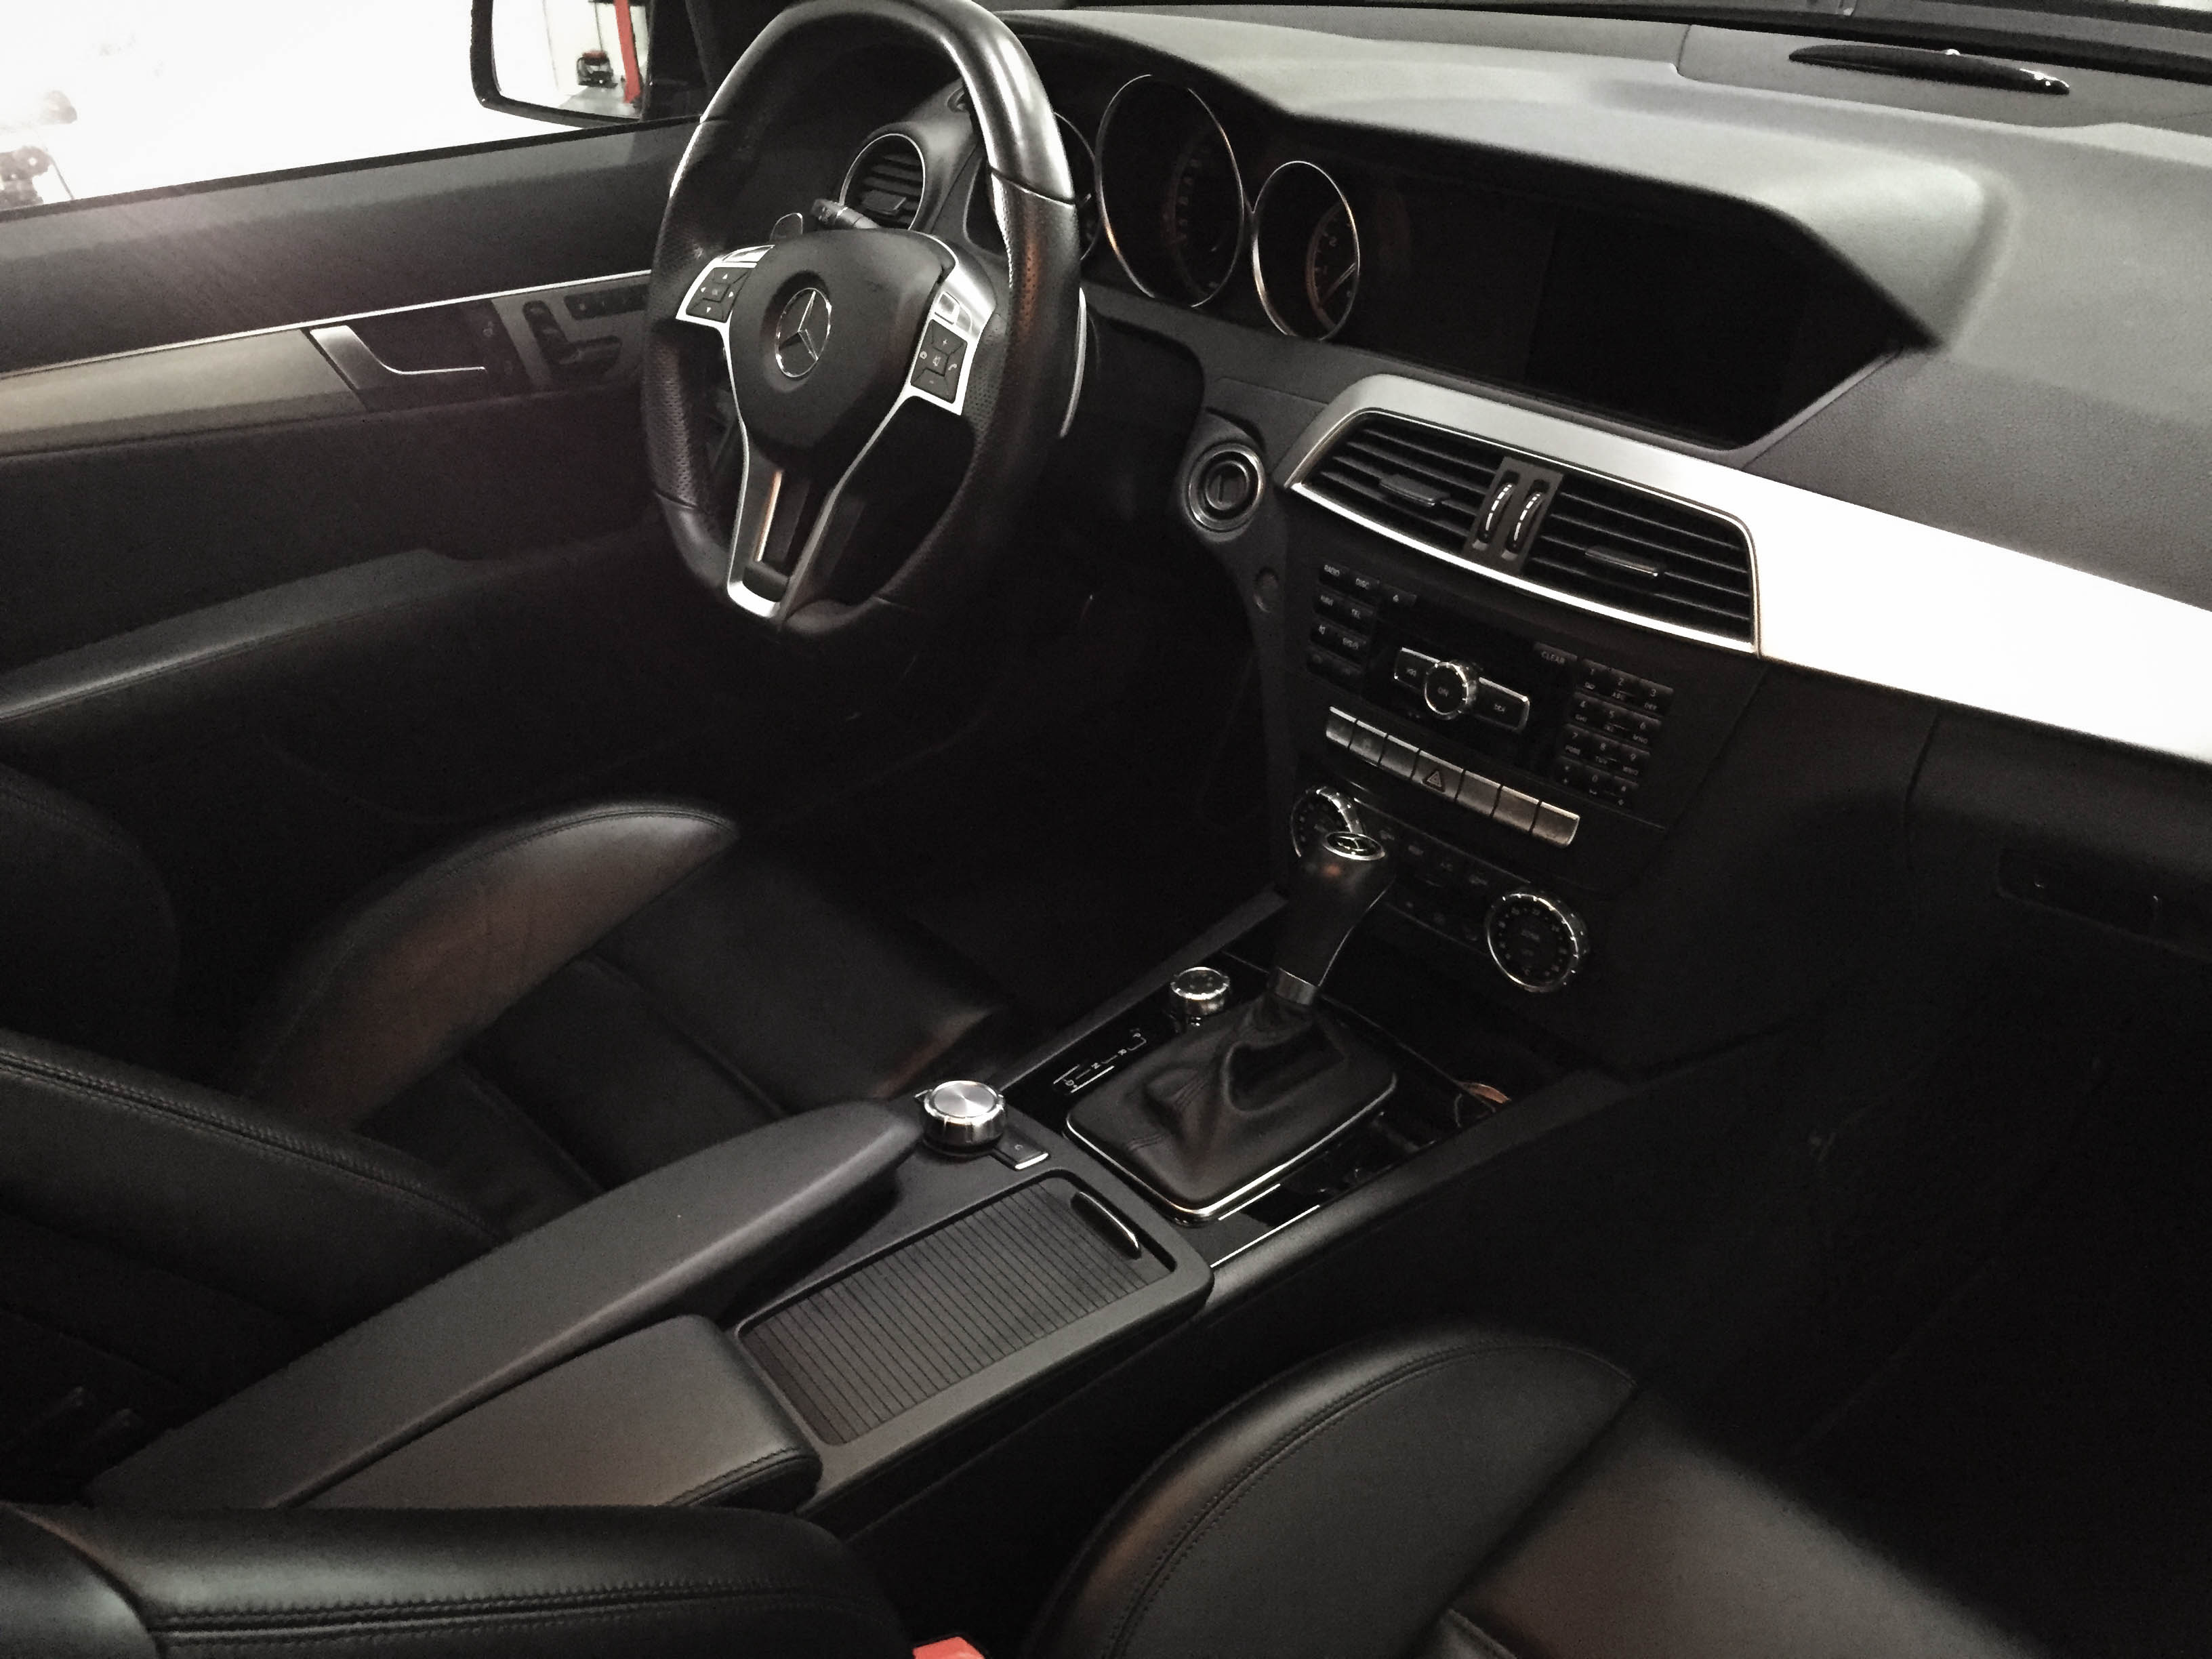 Mercedes C63 Touring – Interior